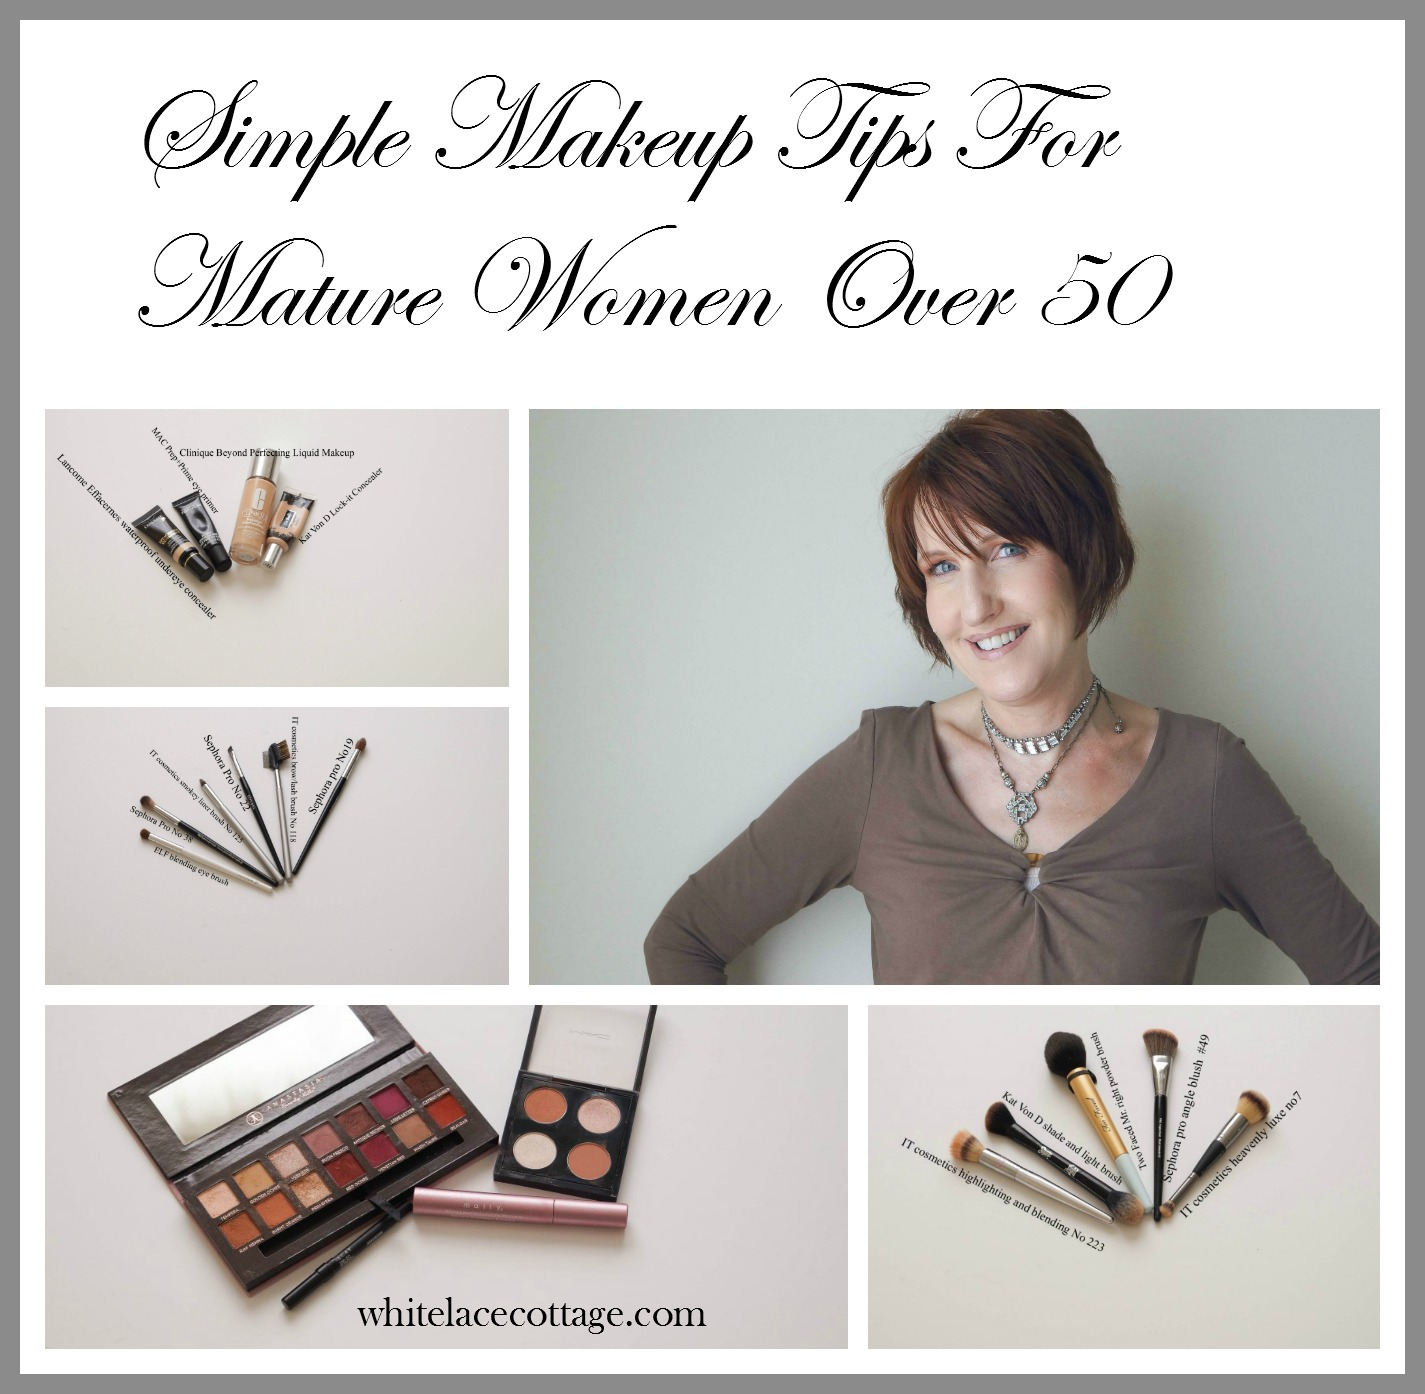 Simple Makeup Tips For Mature Women Over 11 - ANNE P MAKEUP AND MORE